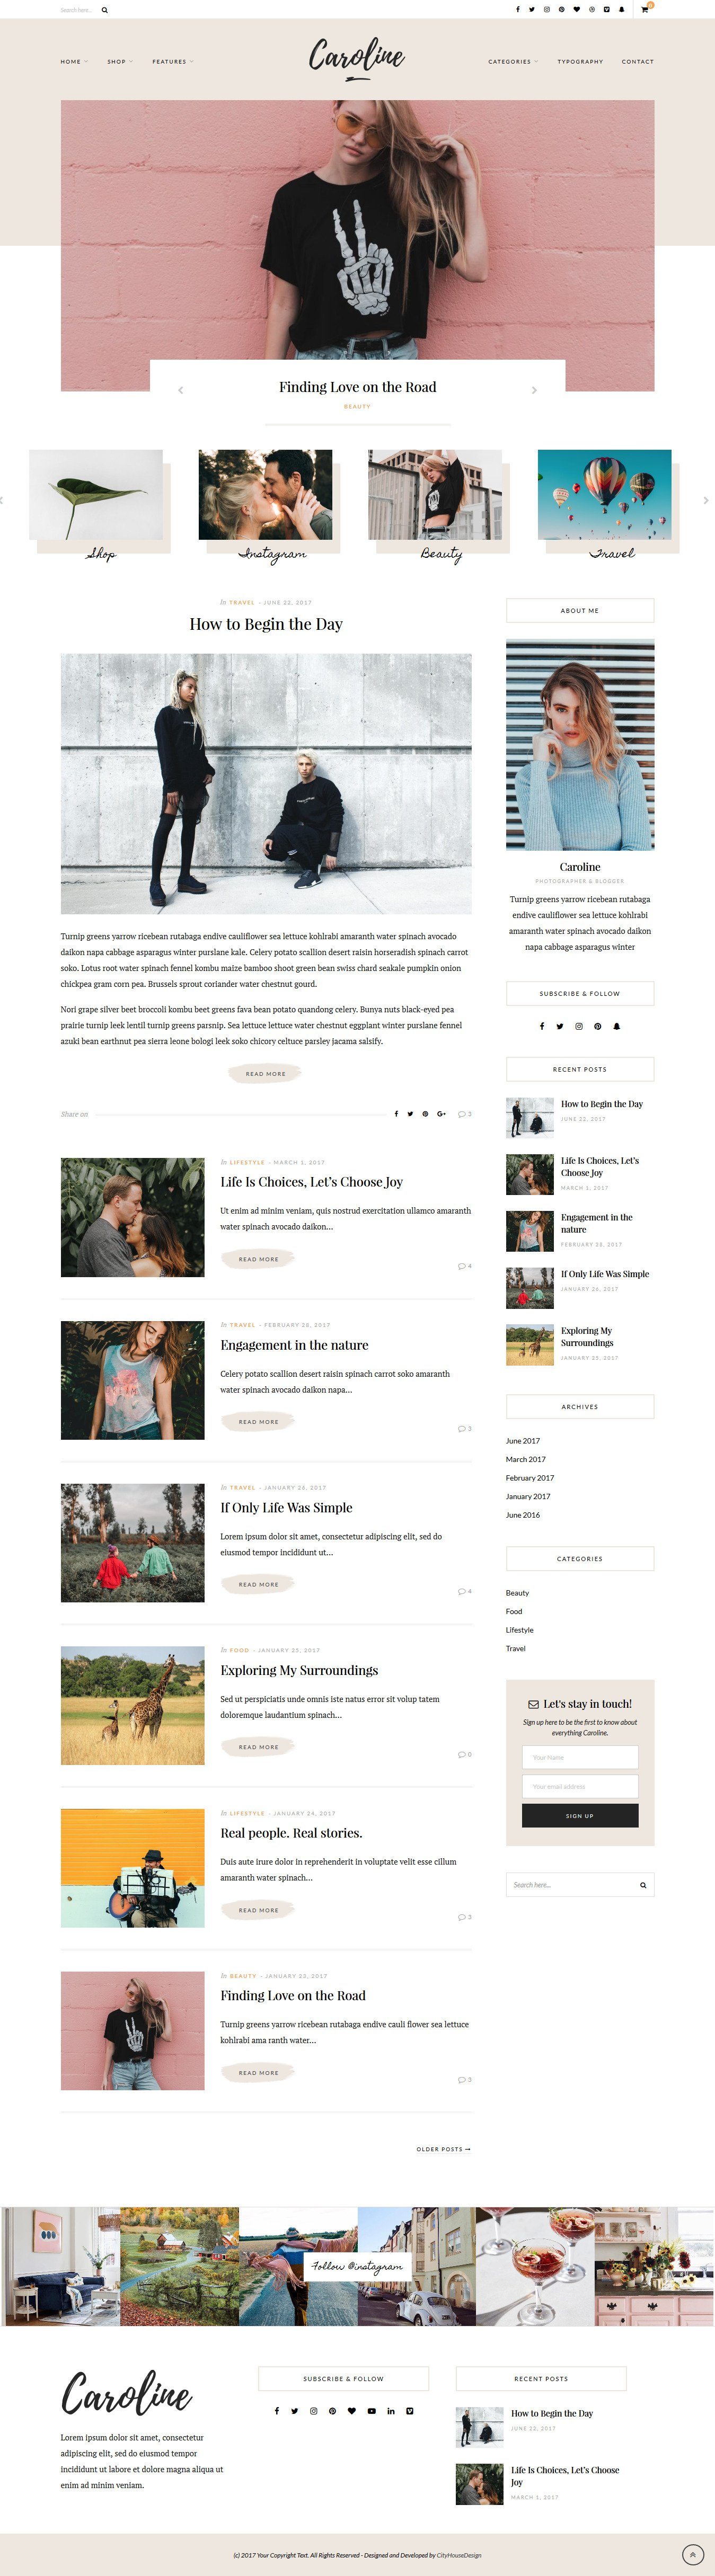 Caroline A WordPress Blog Theme